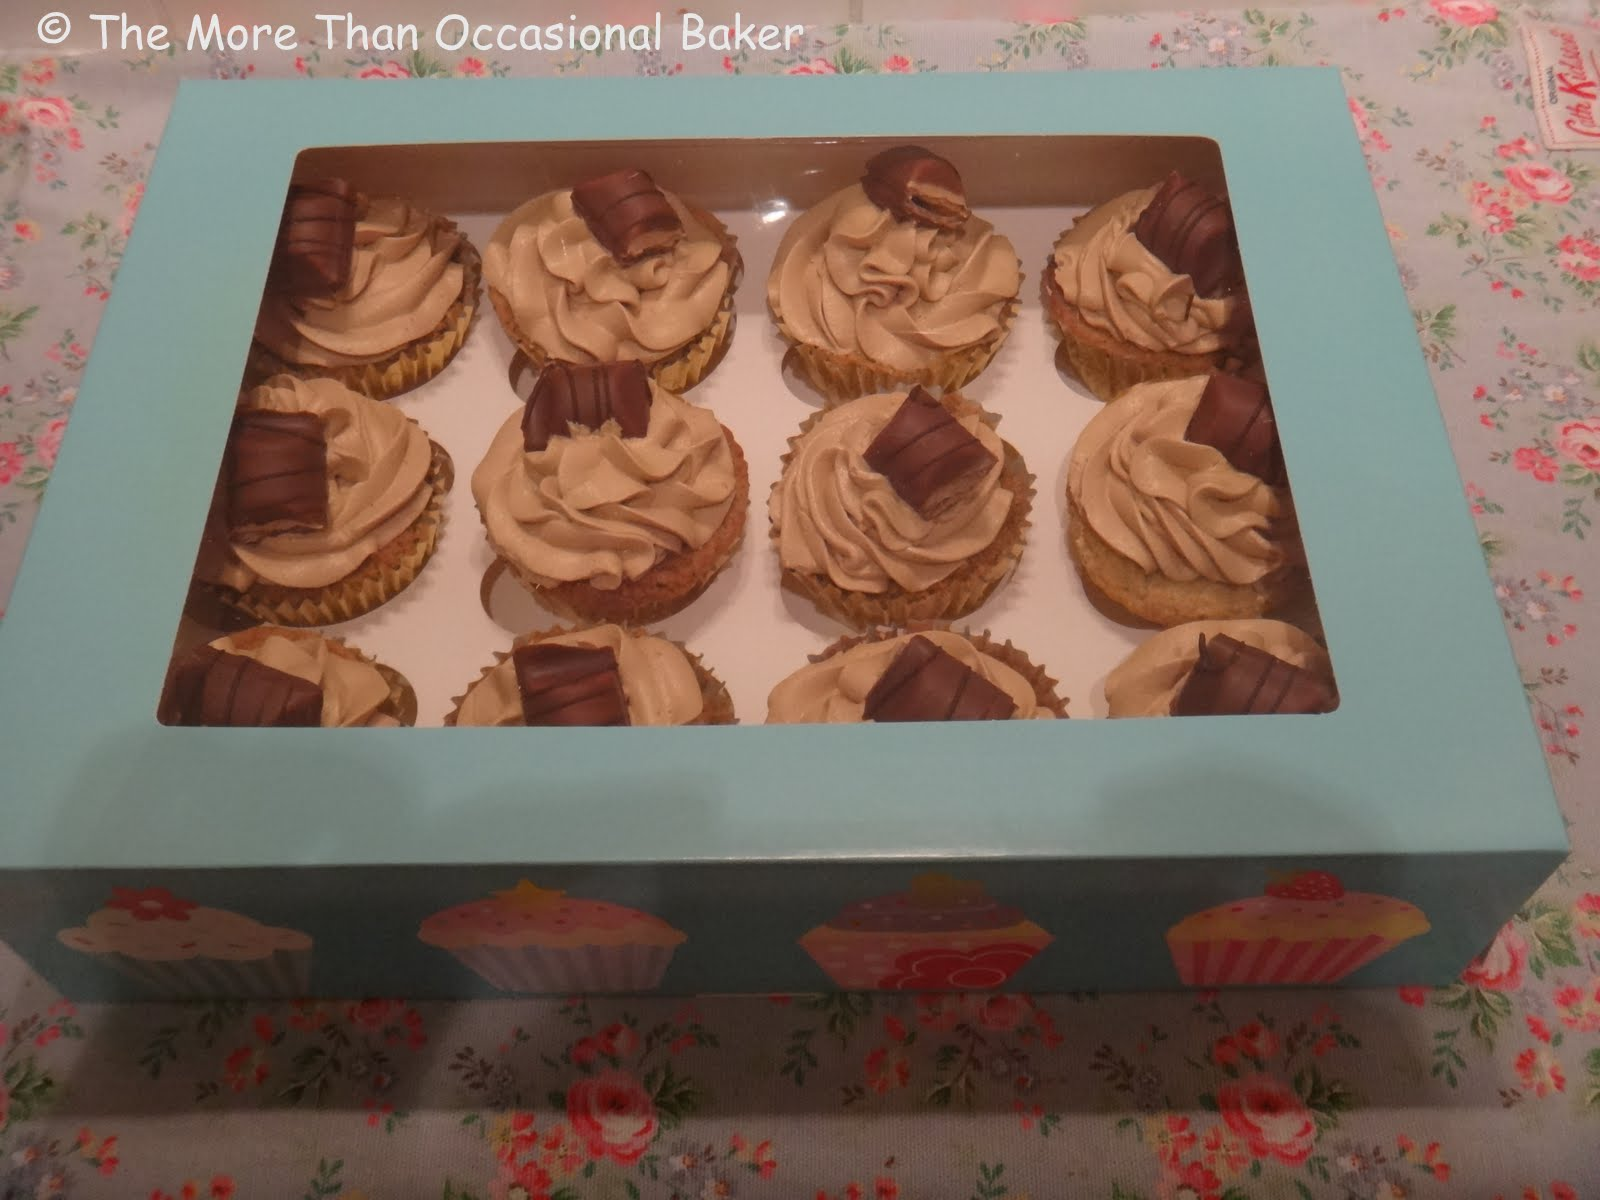 Exceptionnel The more than occasional baker: Kinder Bueno Cupcakes DE78